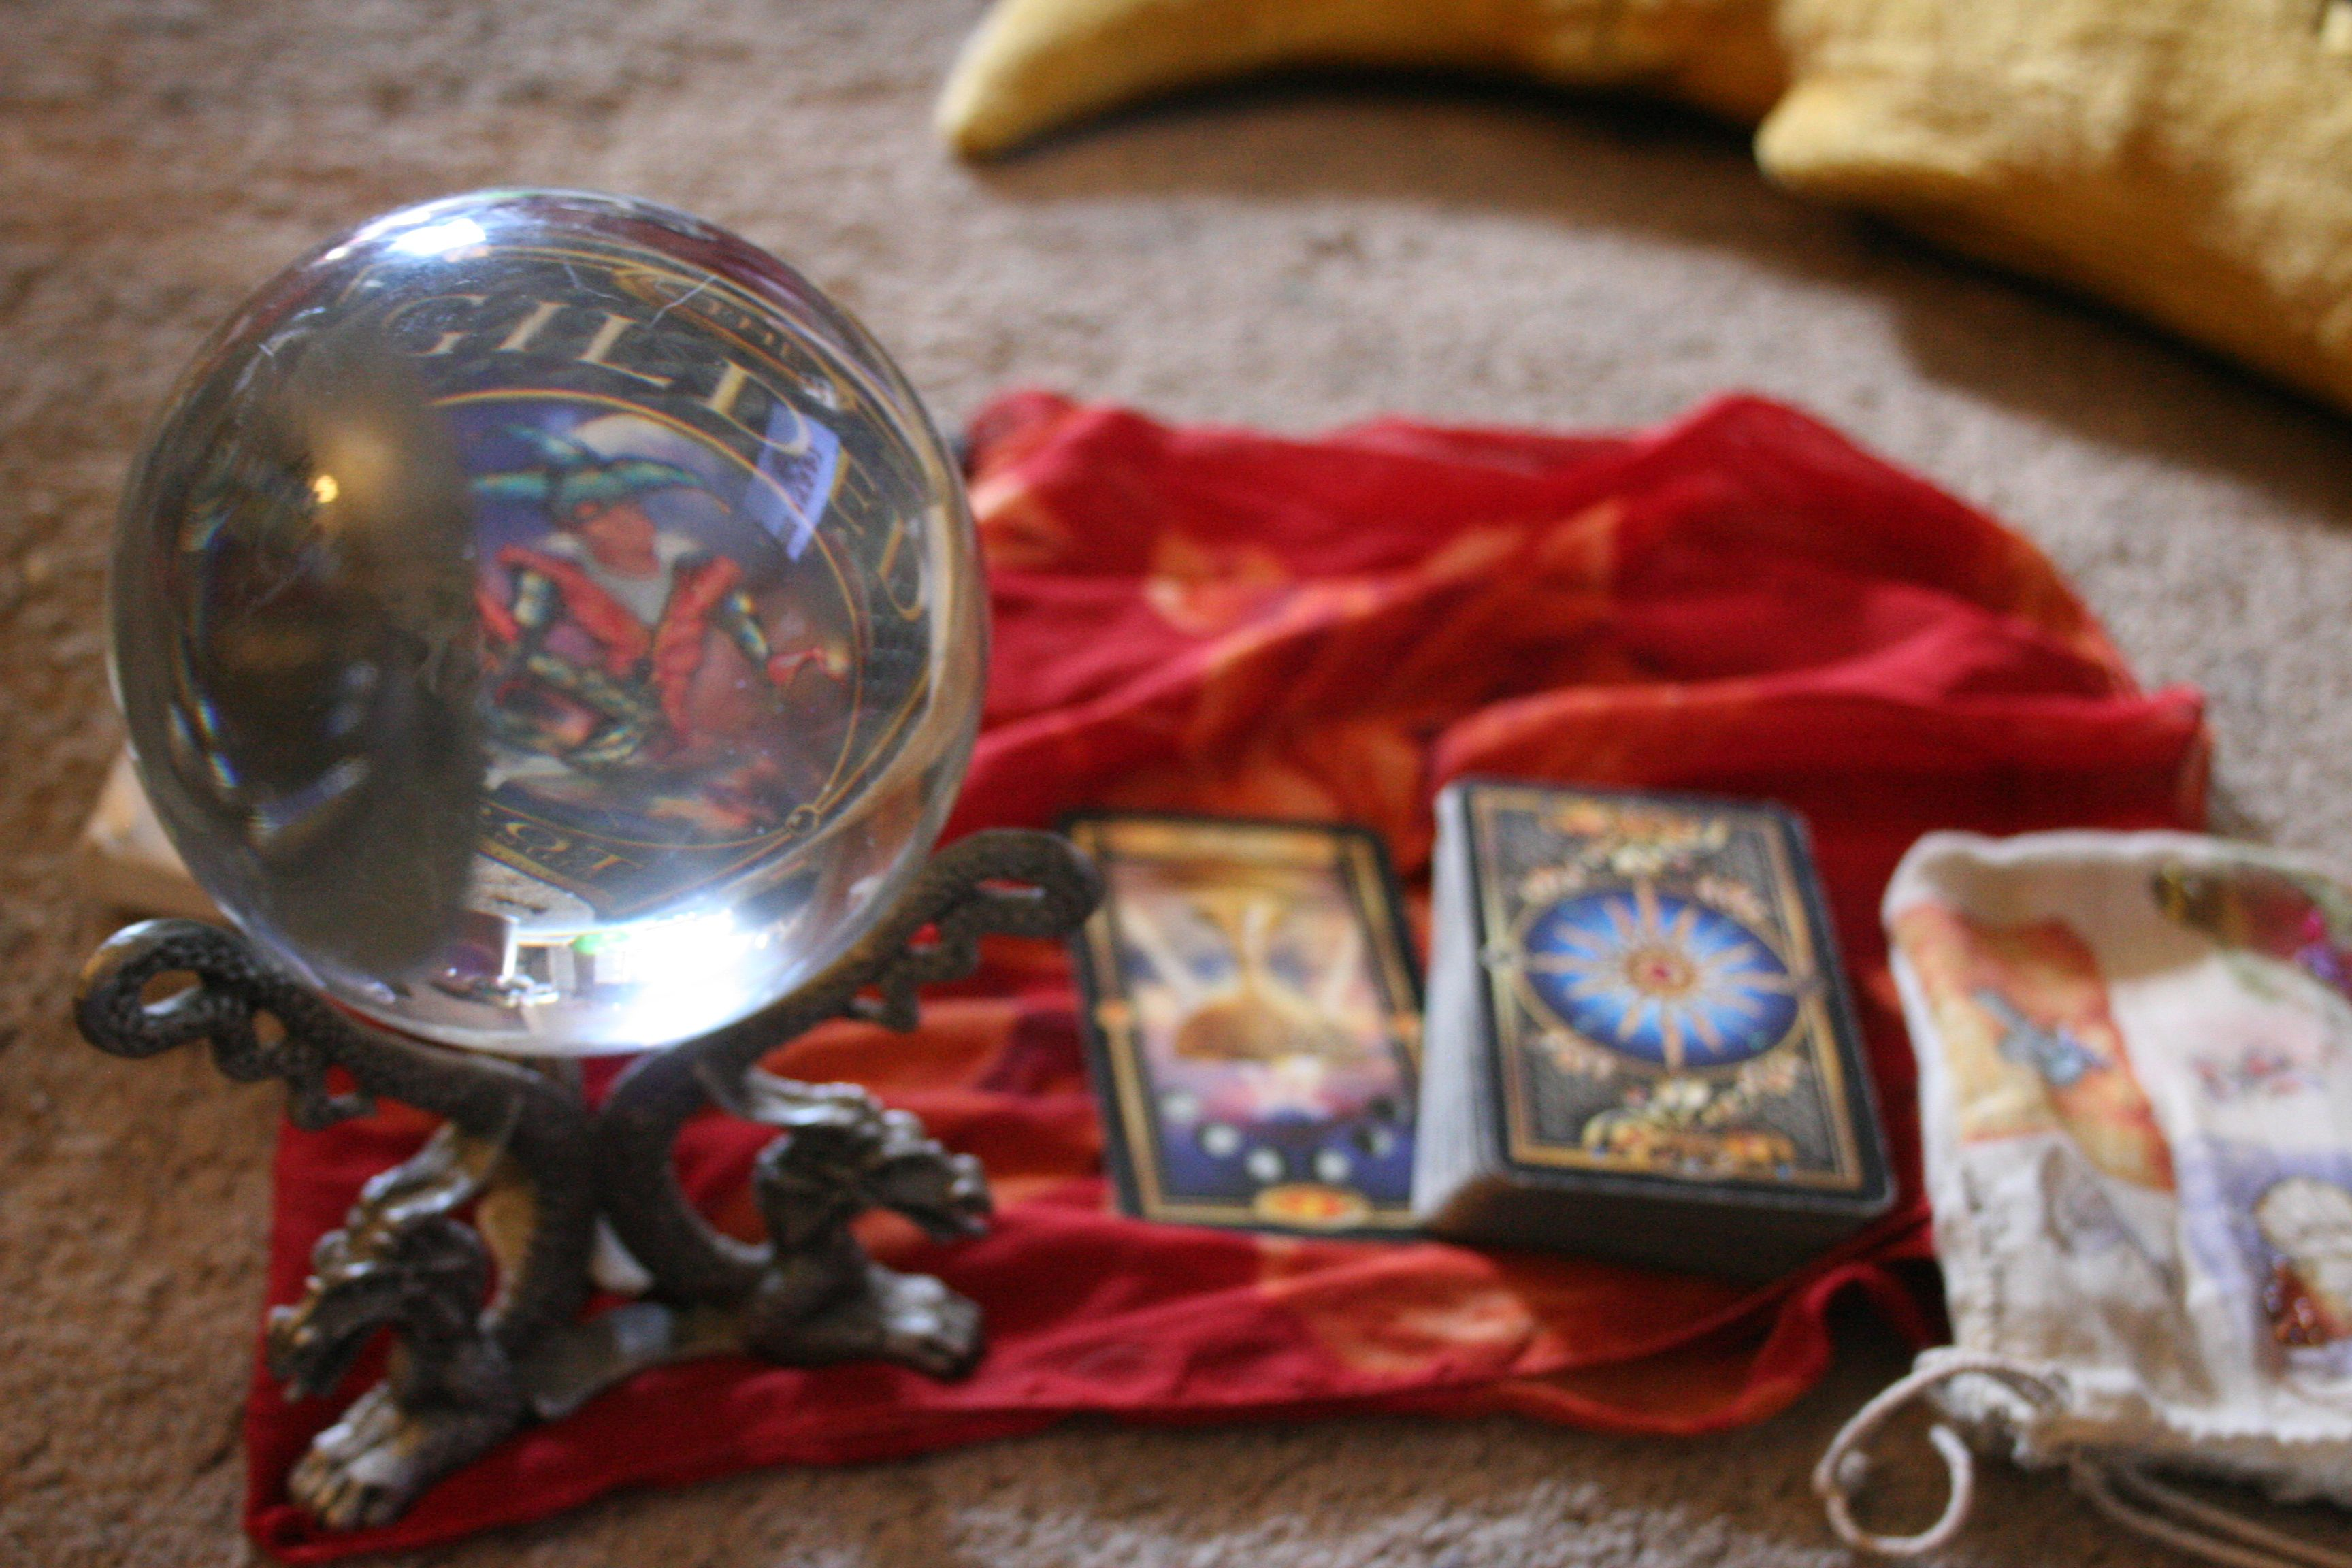 Free tarot card with crystal ball images what might you